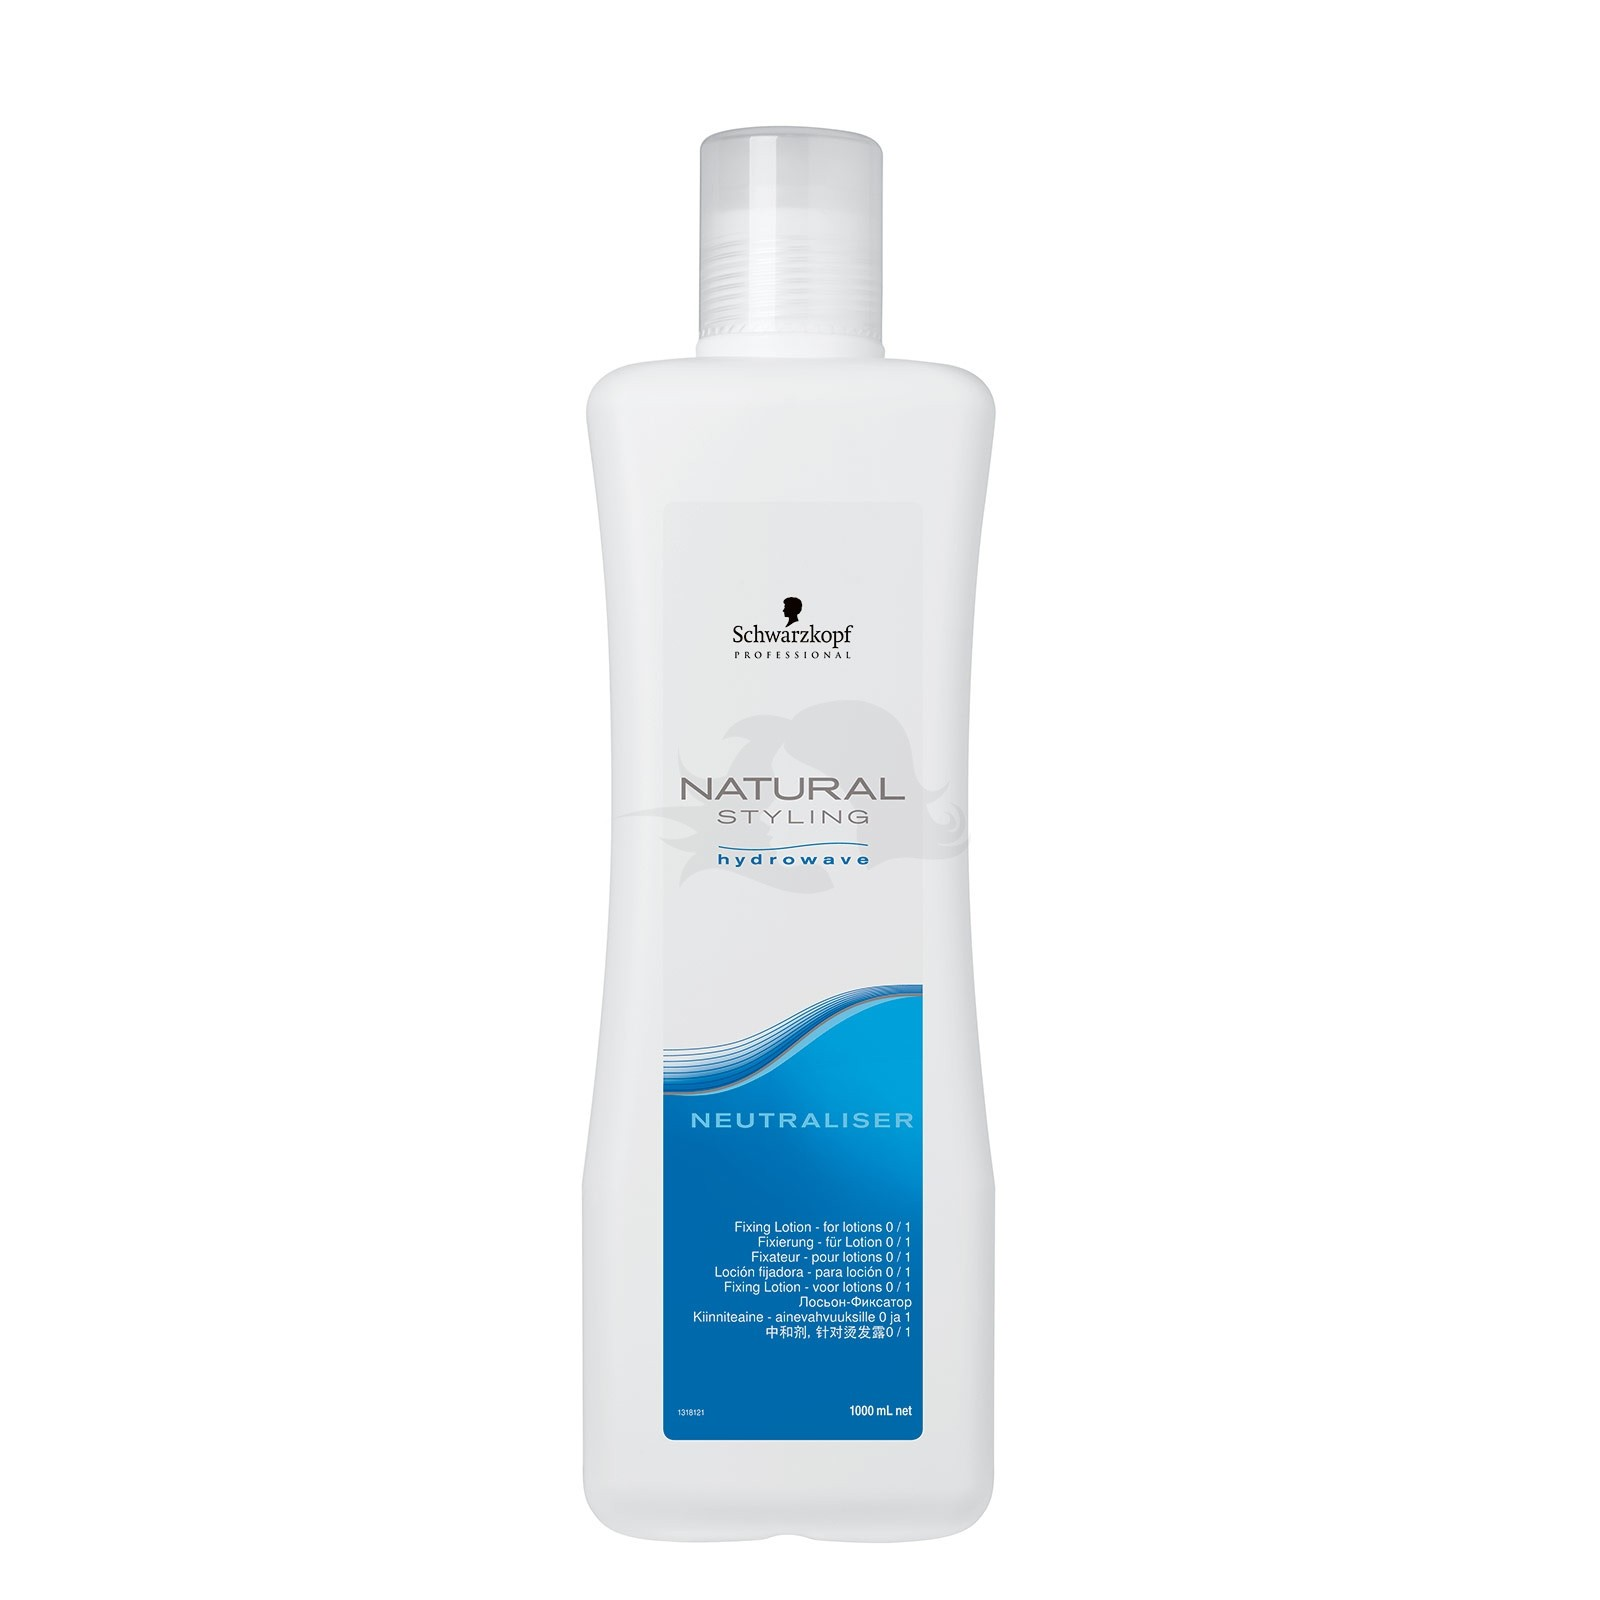 Schwarzkopf Natural Styling Neutraliser